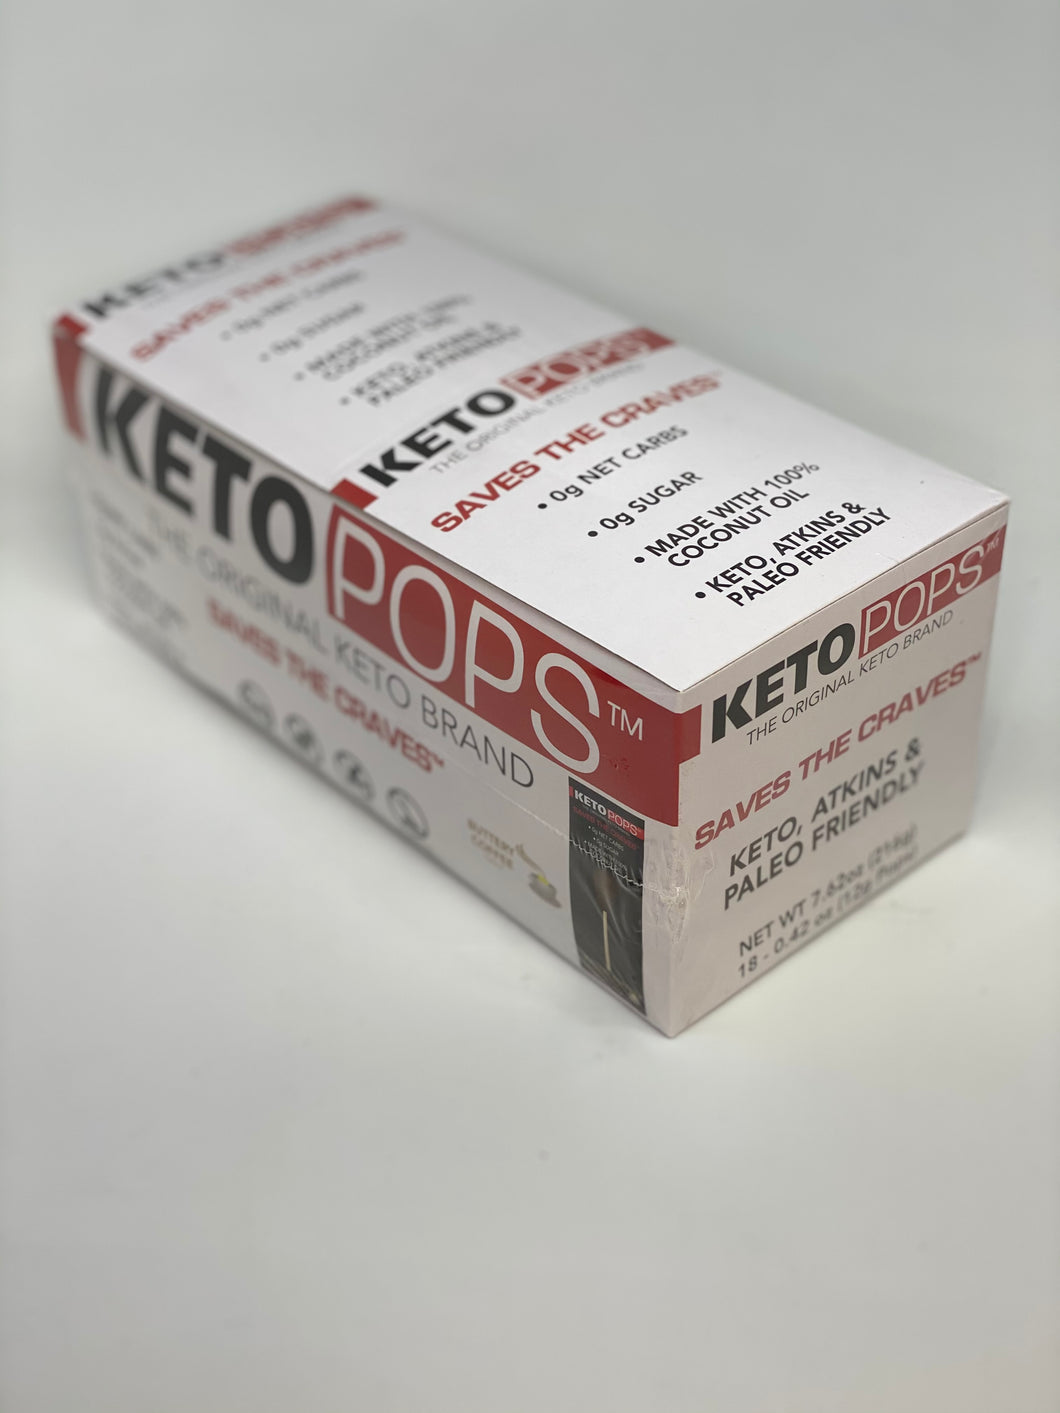 Keto Pop Buttery Coffee 18ct Box